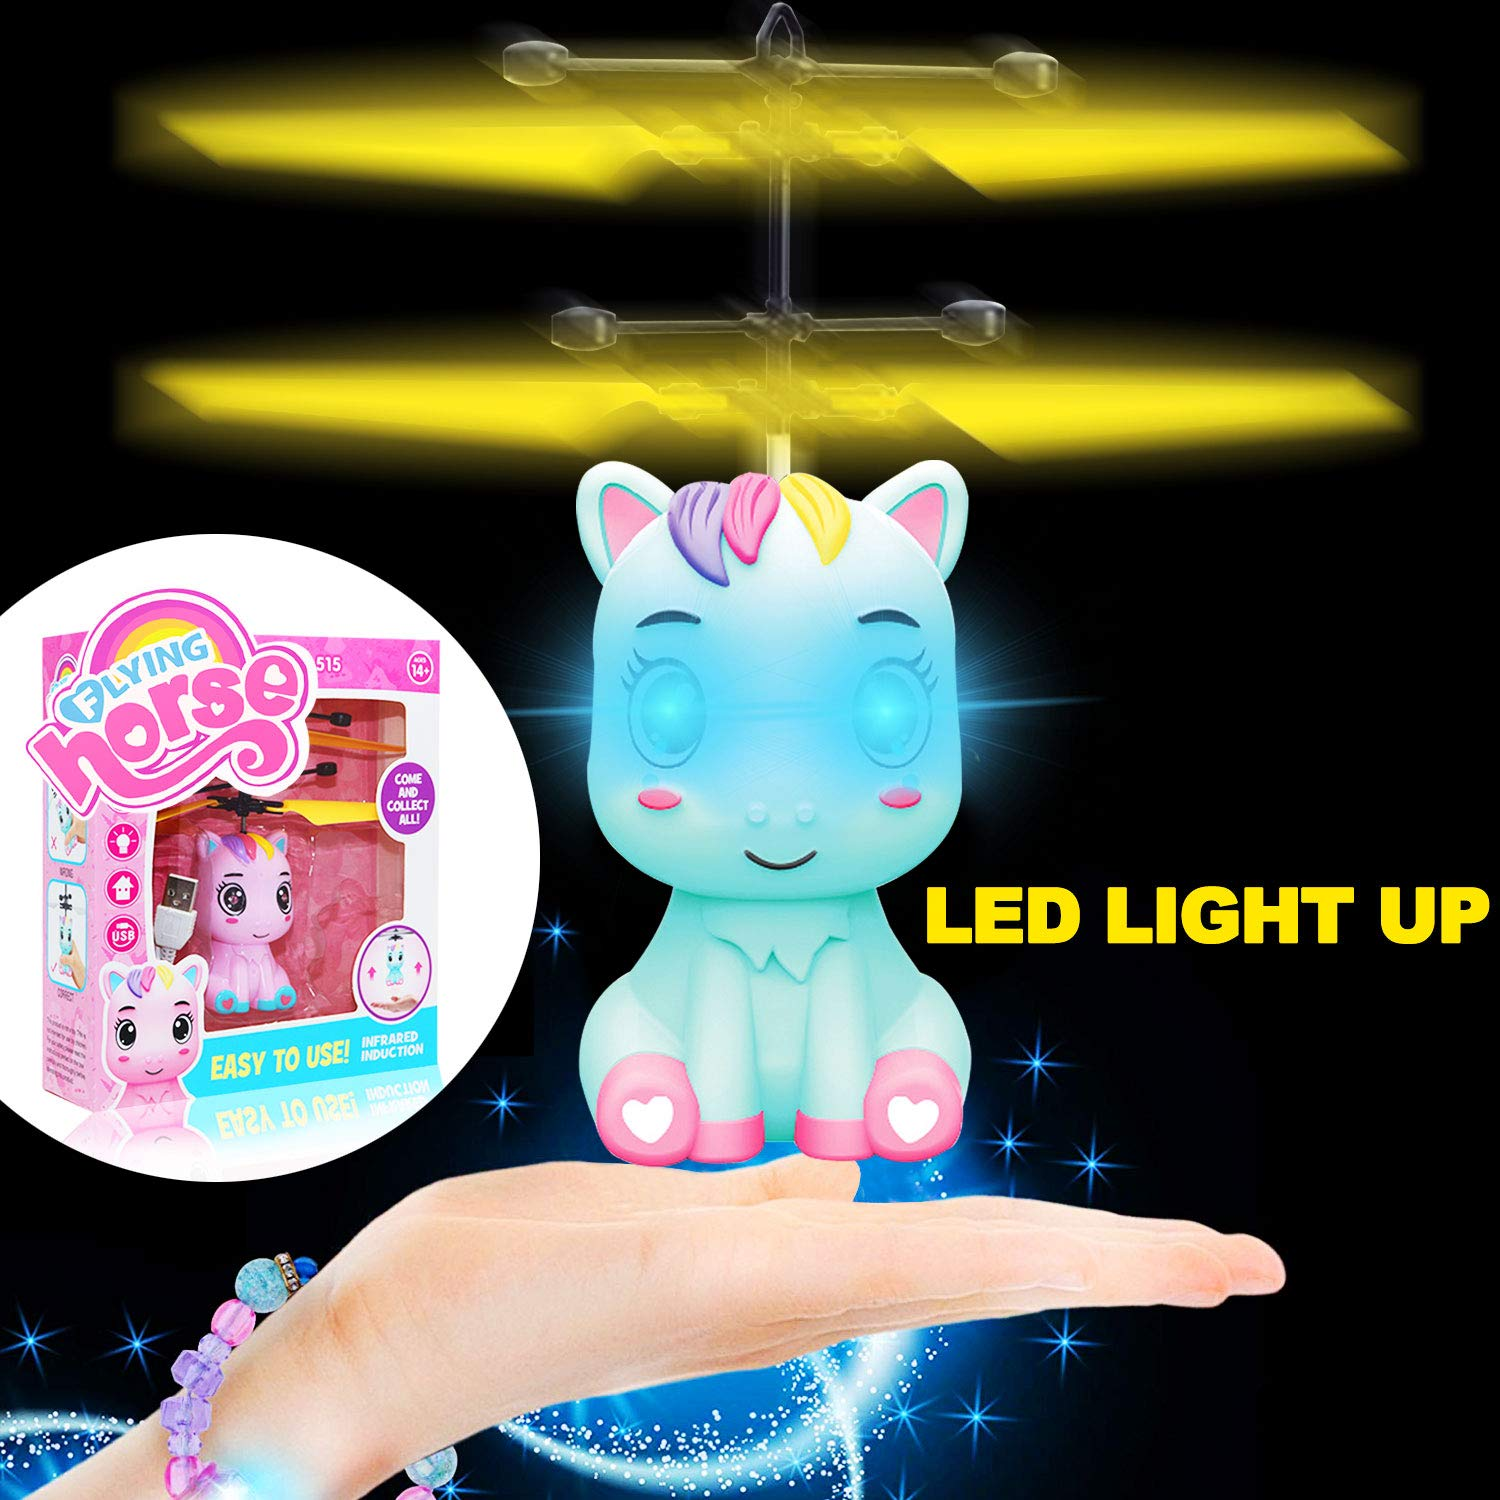 Unicorn LED Flying Toy Ball, Upgraded Flying Ball RC Toys for Kids Light Up Flying Ball Drone with Remote Control Outdoor Flying Toys for Kids Flying Toys for Boys Girls Birthday (Blue) (Blue)